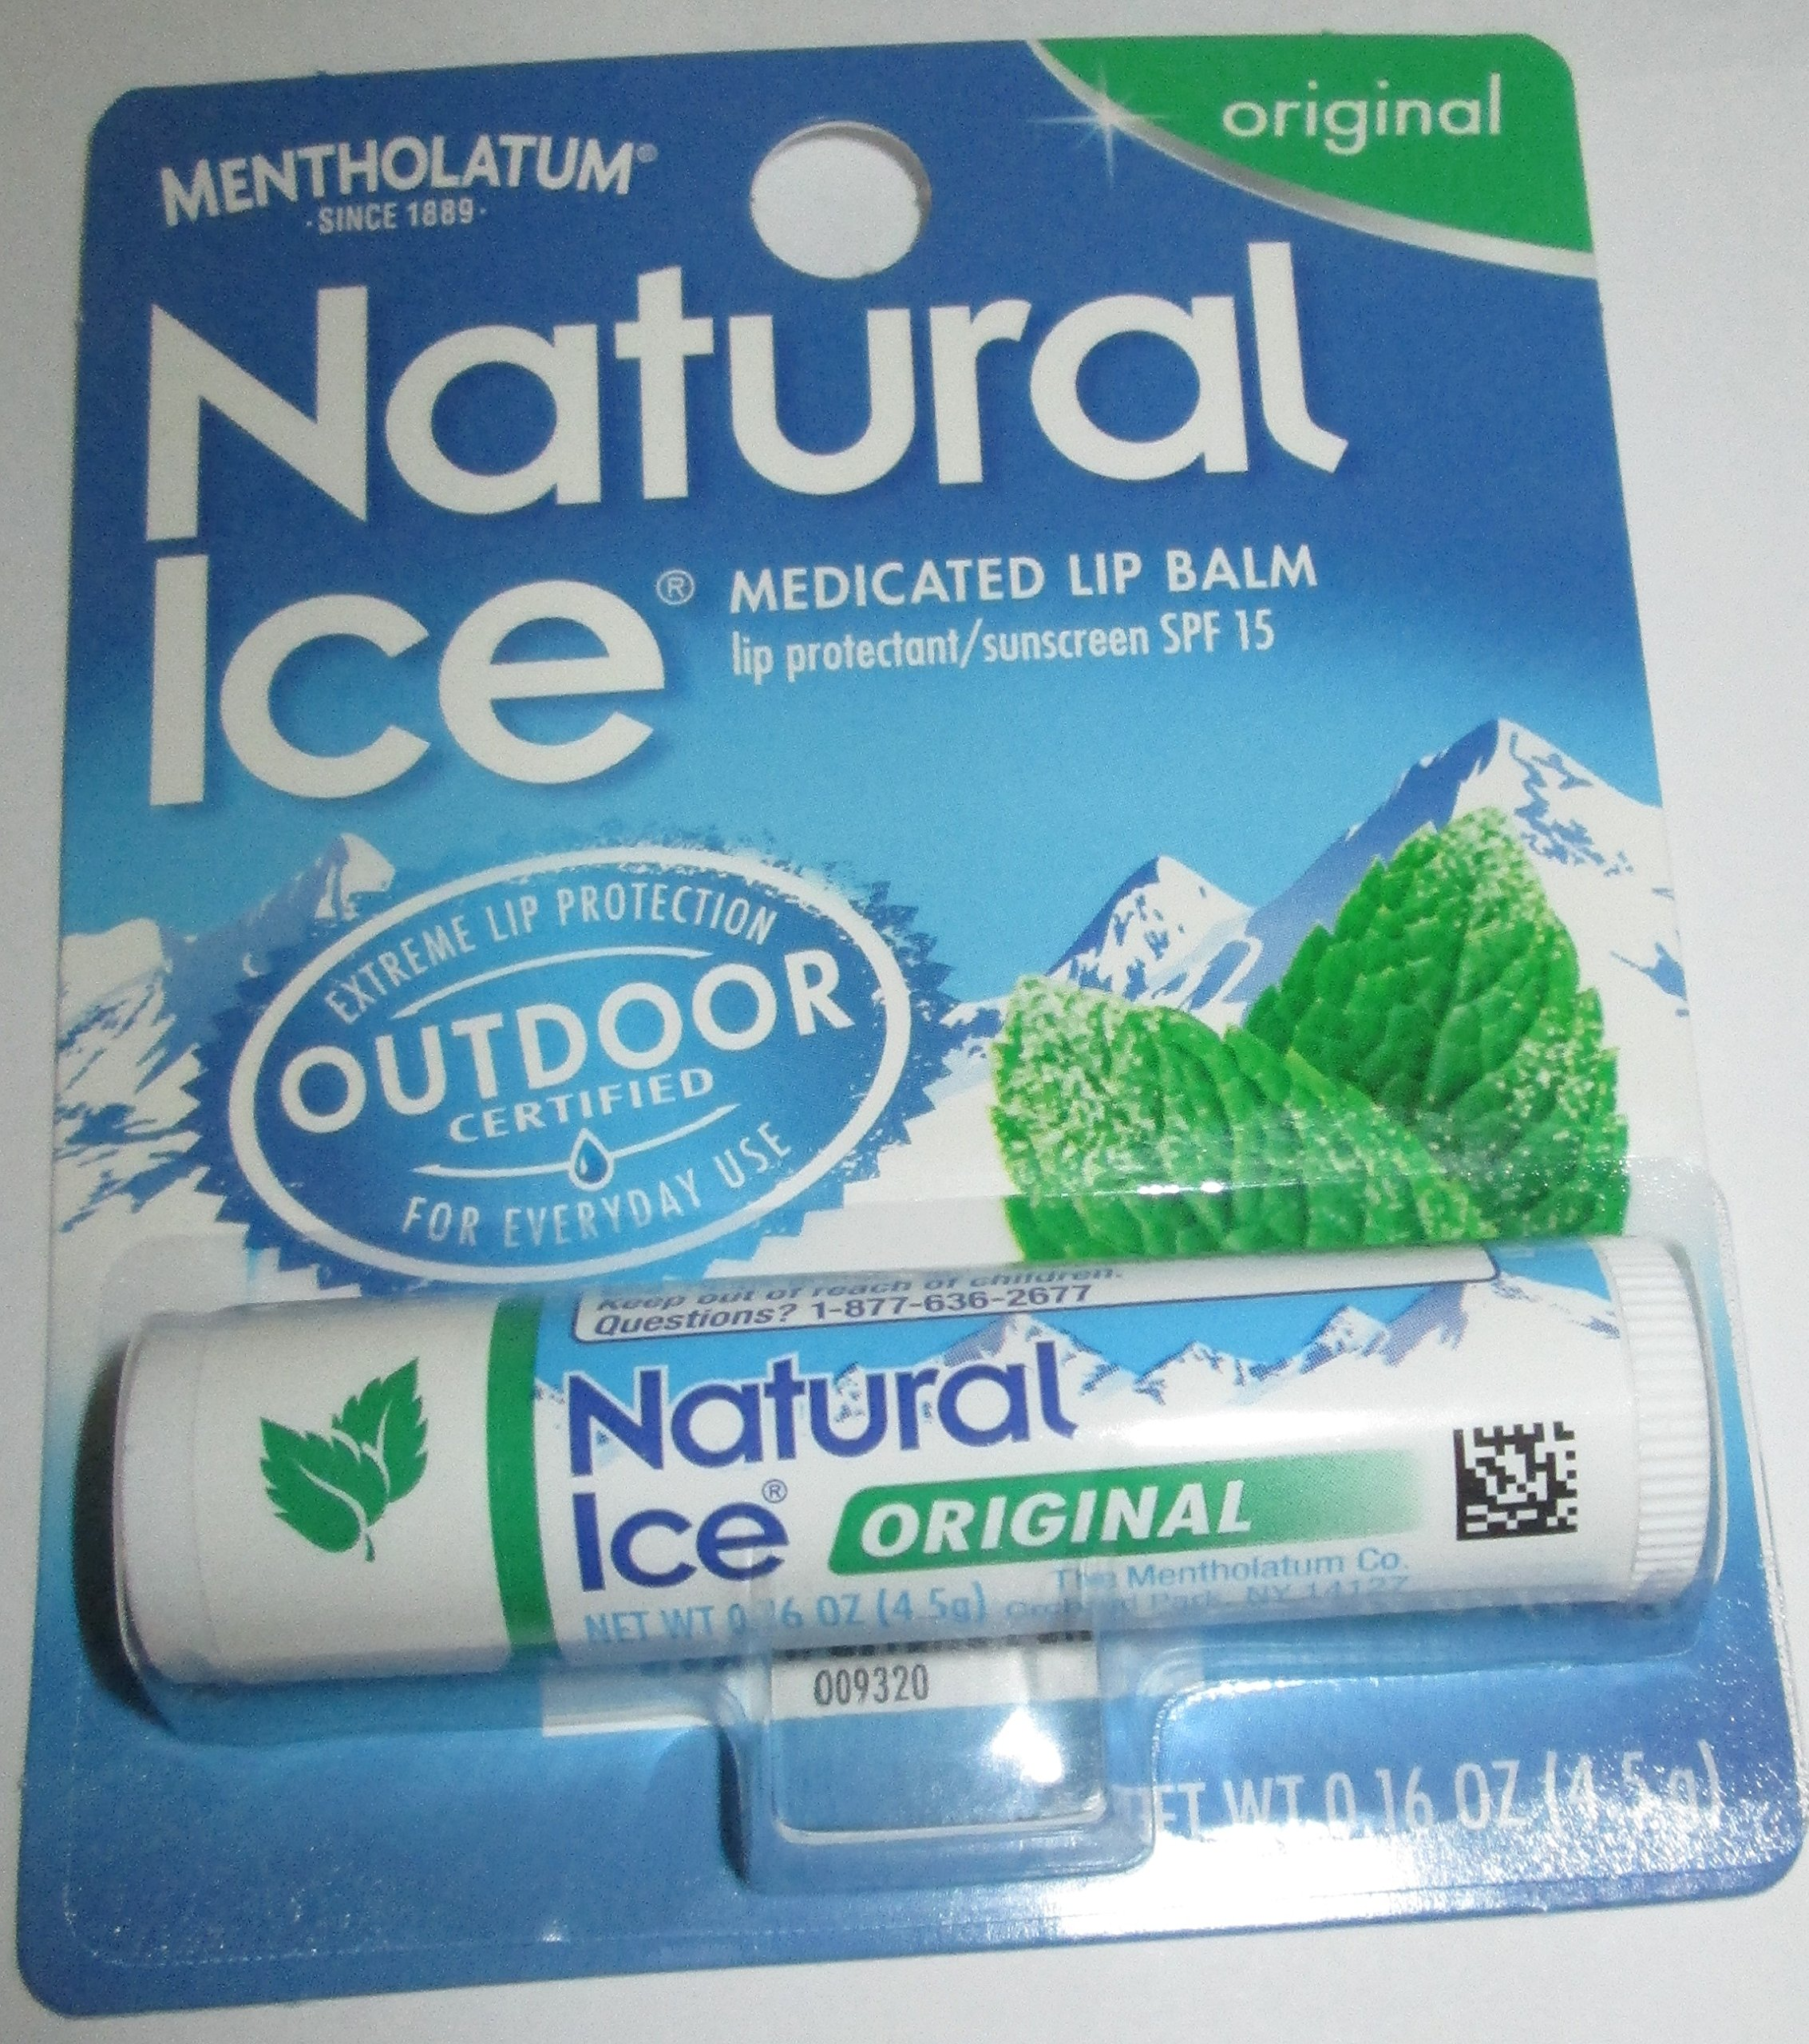 Mentholatum Natural Ice Medicated Lip Protectant Sunscreen, 12 Count by Mentholatum